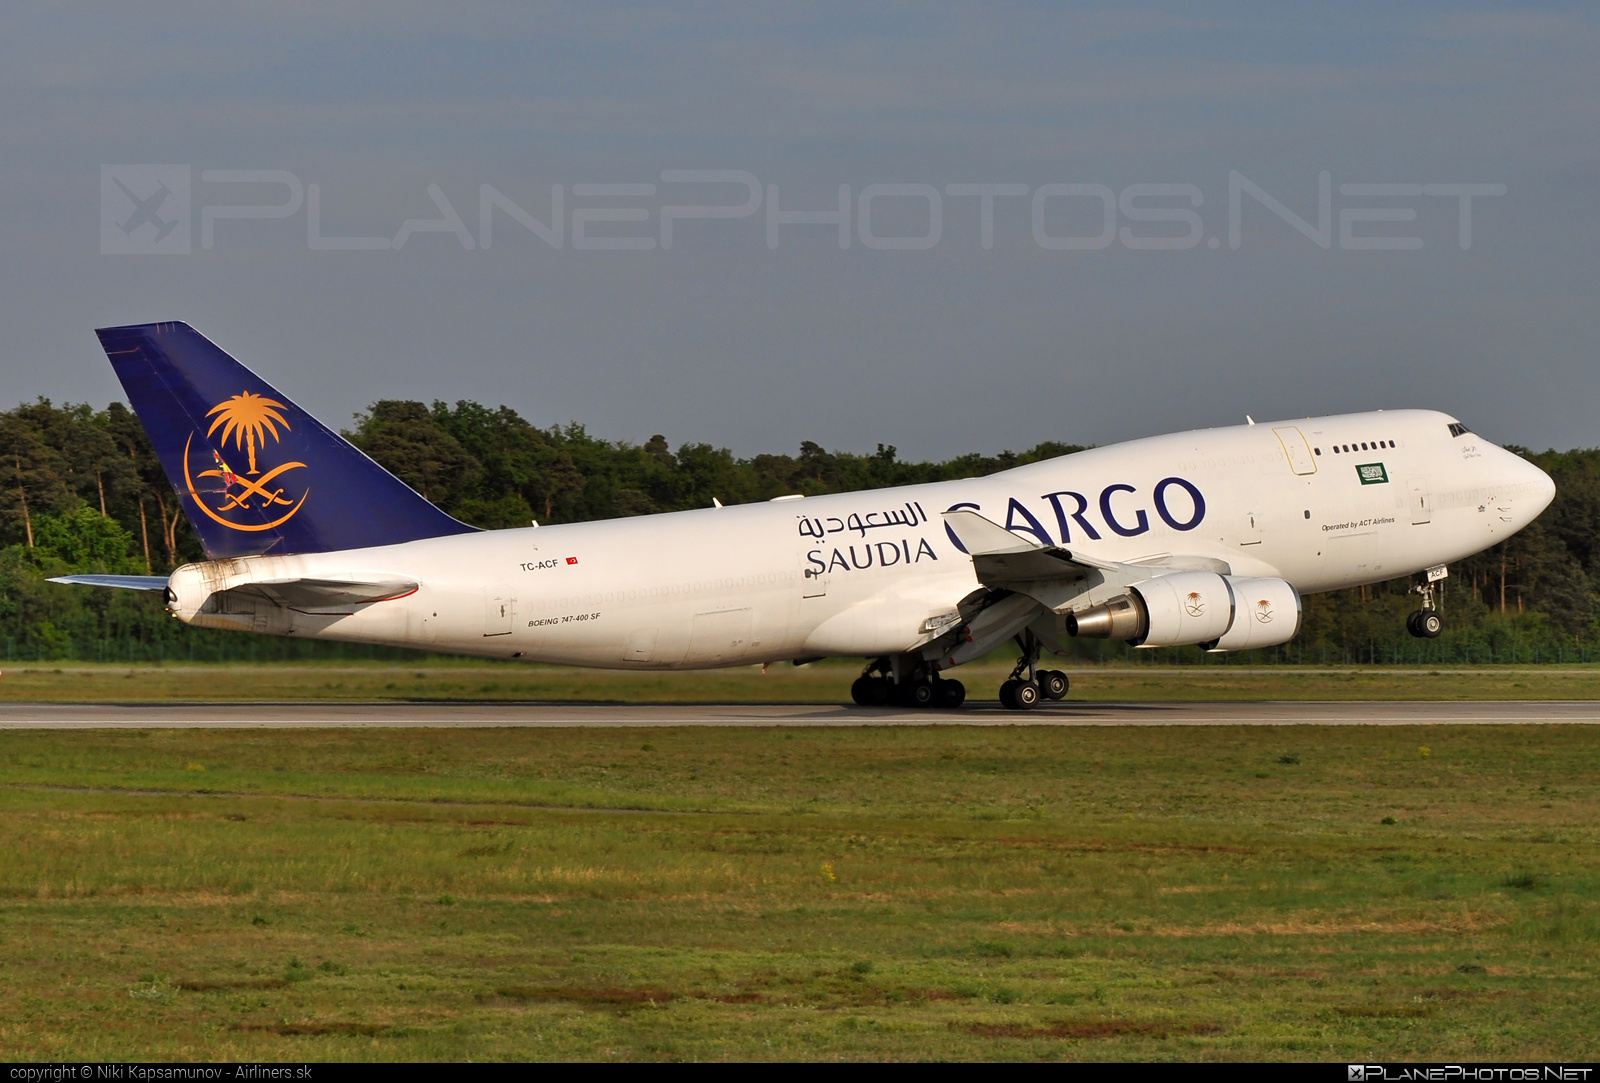 Boeing 747-400SF - TC-ACF operated by Saudi Arabian Airlines Cargo (myCARGO) #b747 #b747sf #boeing #boeing747 #jumbo